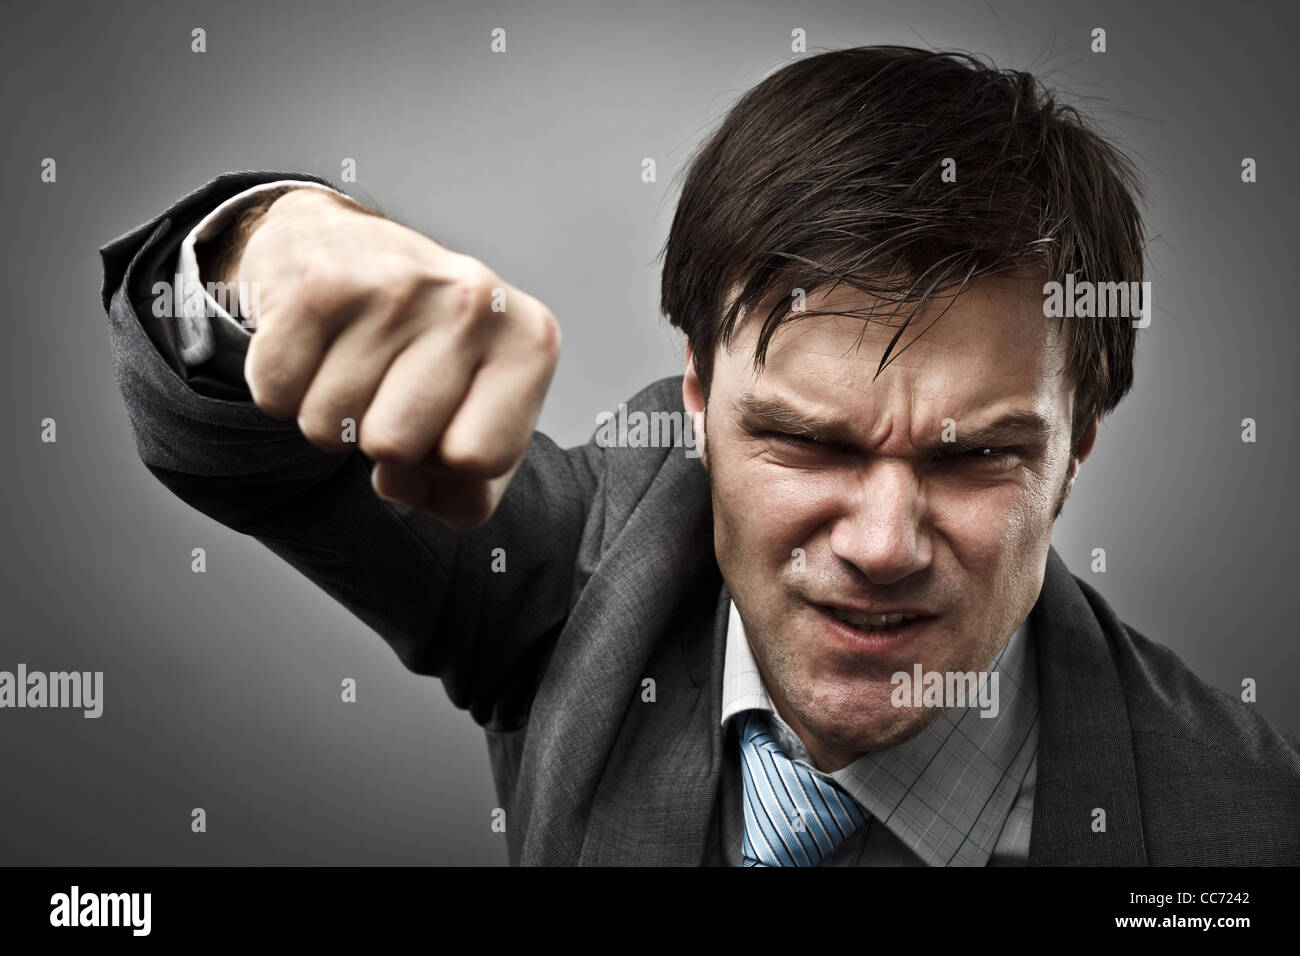 Studio portrait of an aggressive businessman punching - Stock Image